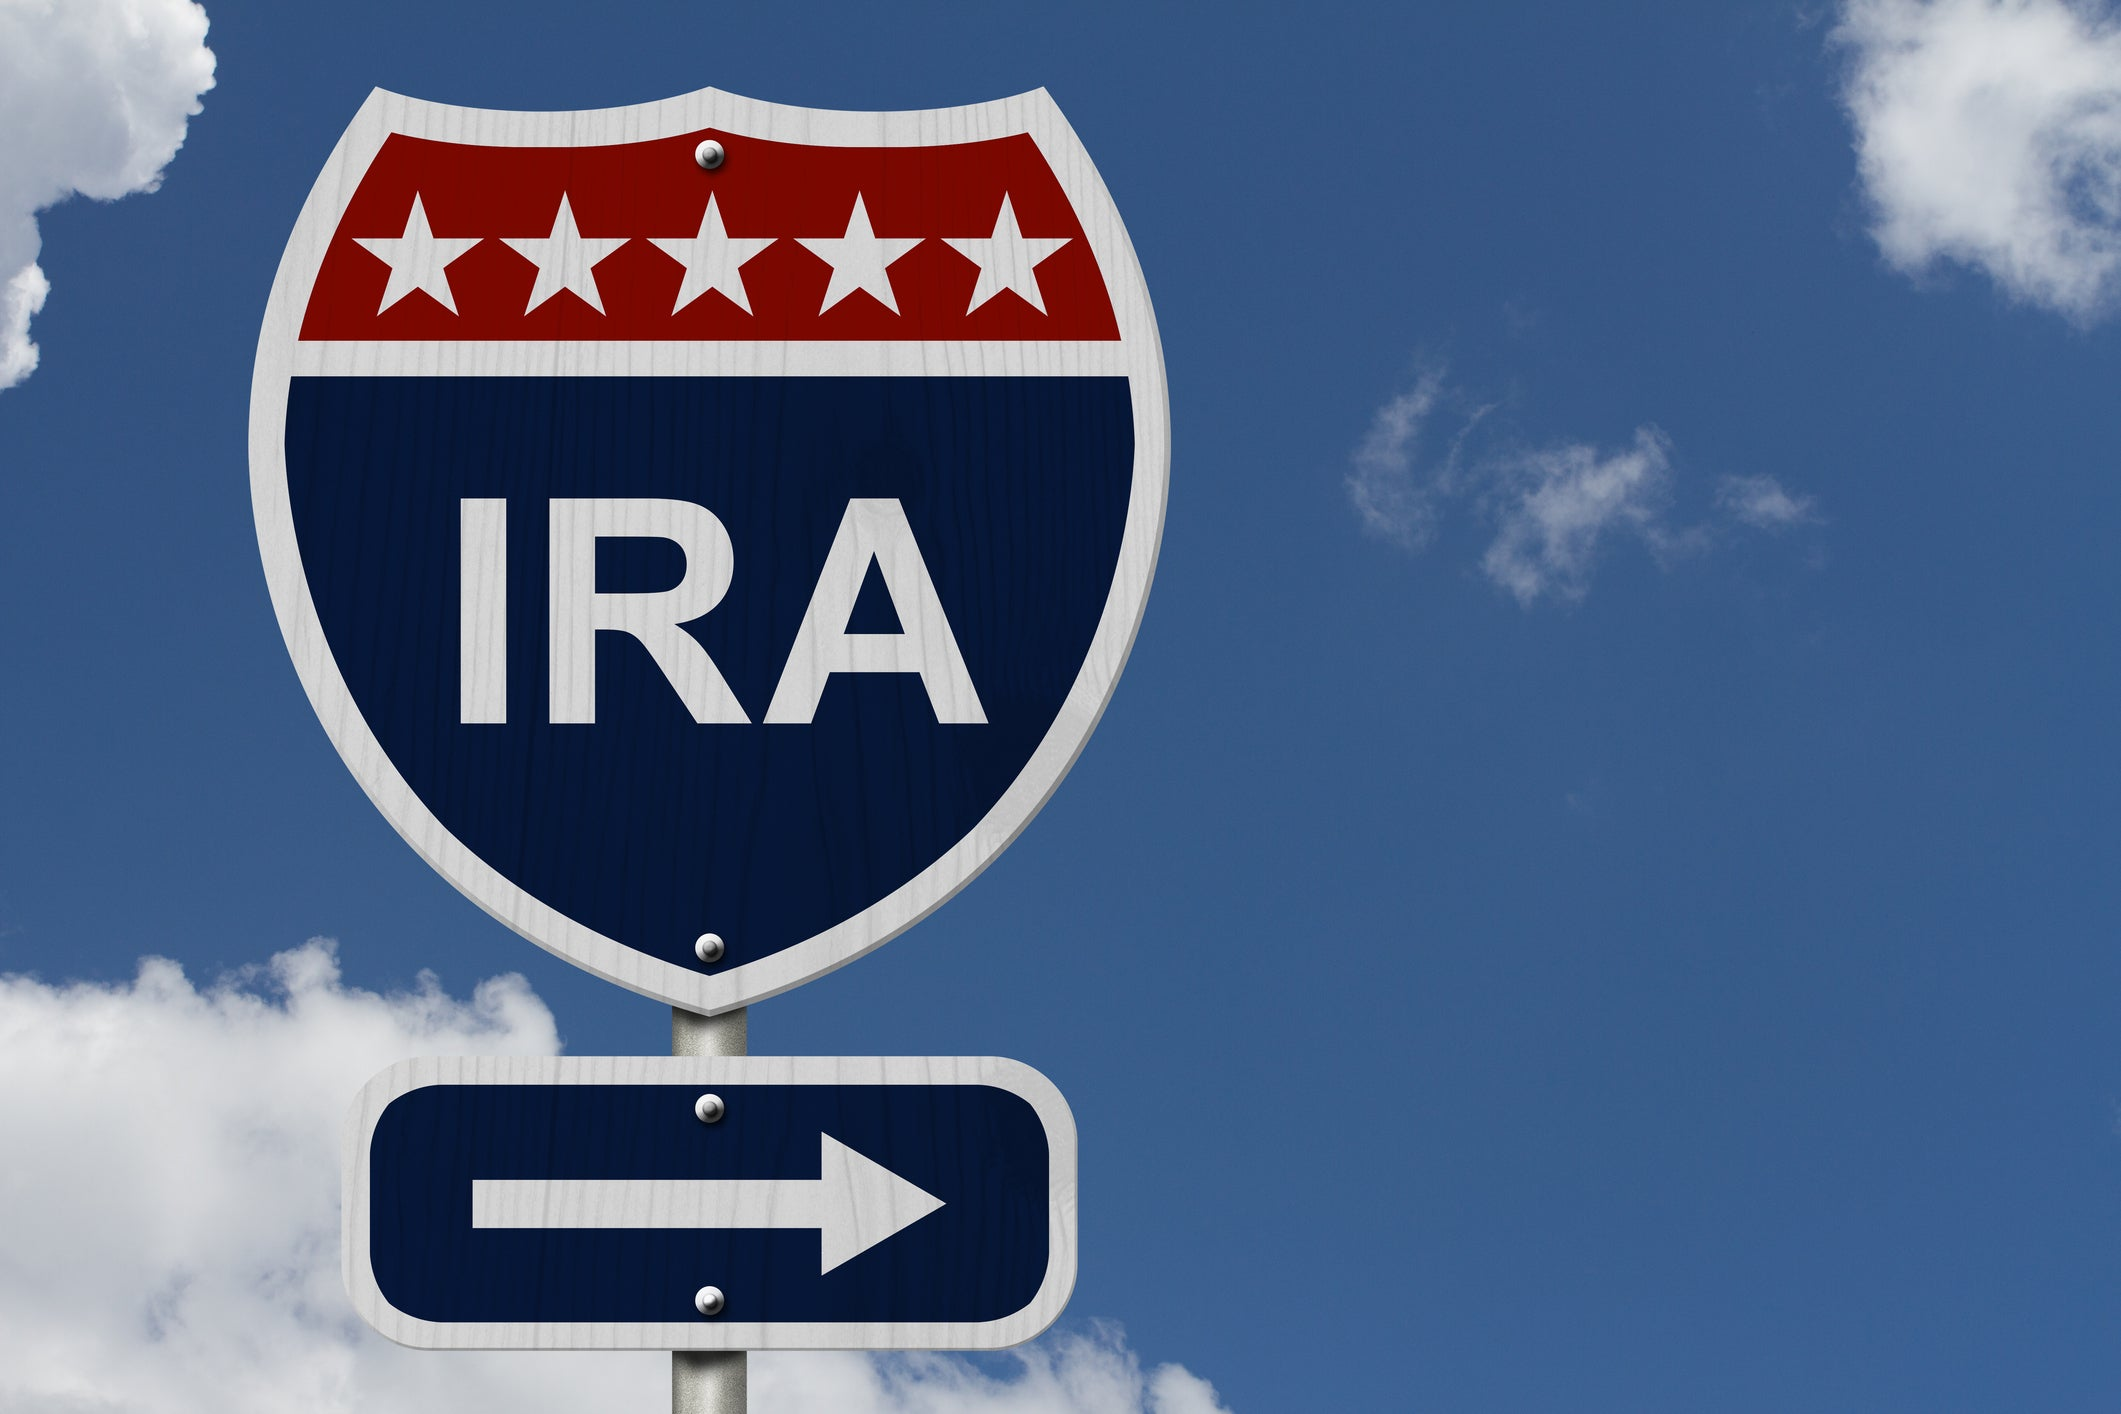 2018 Ira Rmd Table How Much Do I Have To Withdraw From My Retirement Accounts The Motley Fool